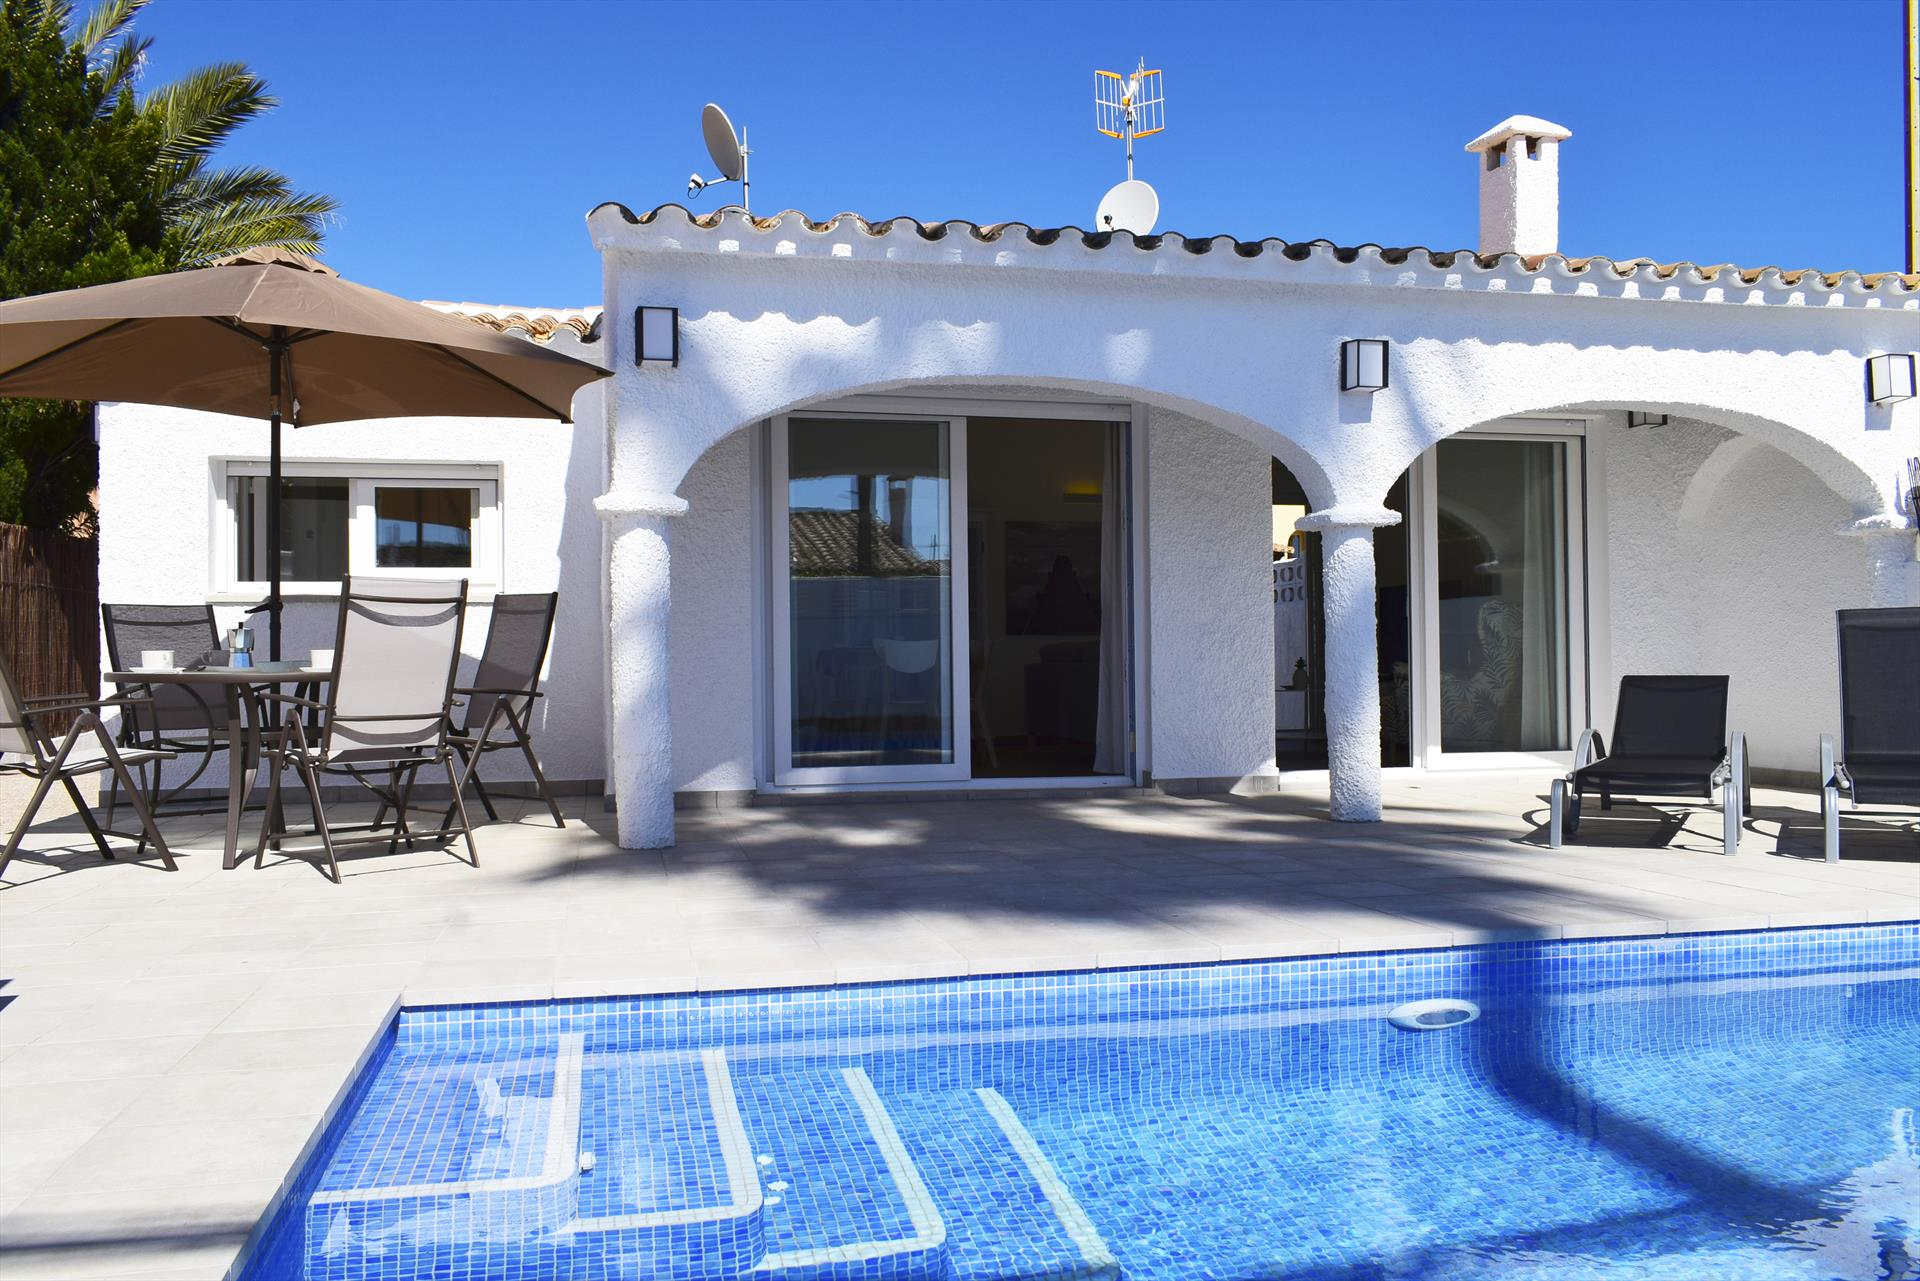 CH3200 Bacalla Piscina Privada Les Marines, Wonderful and cheerful holiday house in Denia, on the Costa Blanca, Spain  with private pool for 6 persons.....